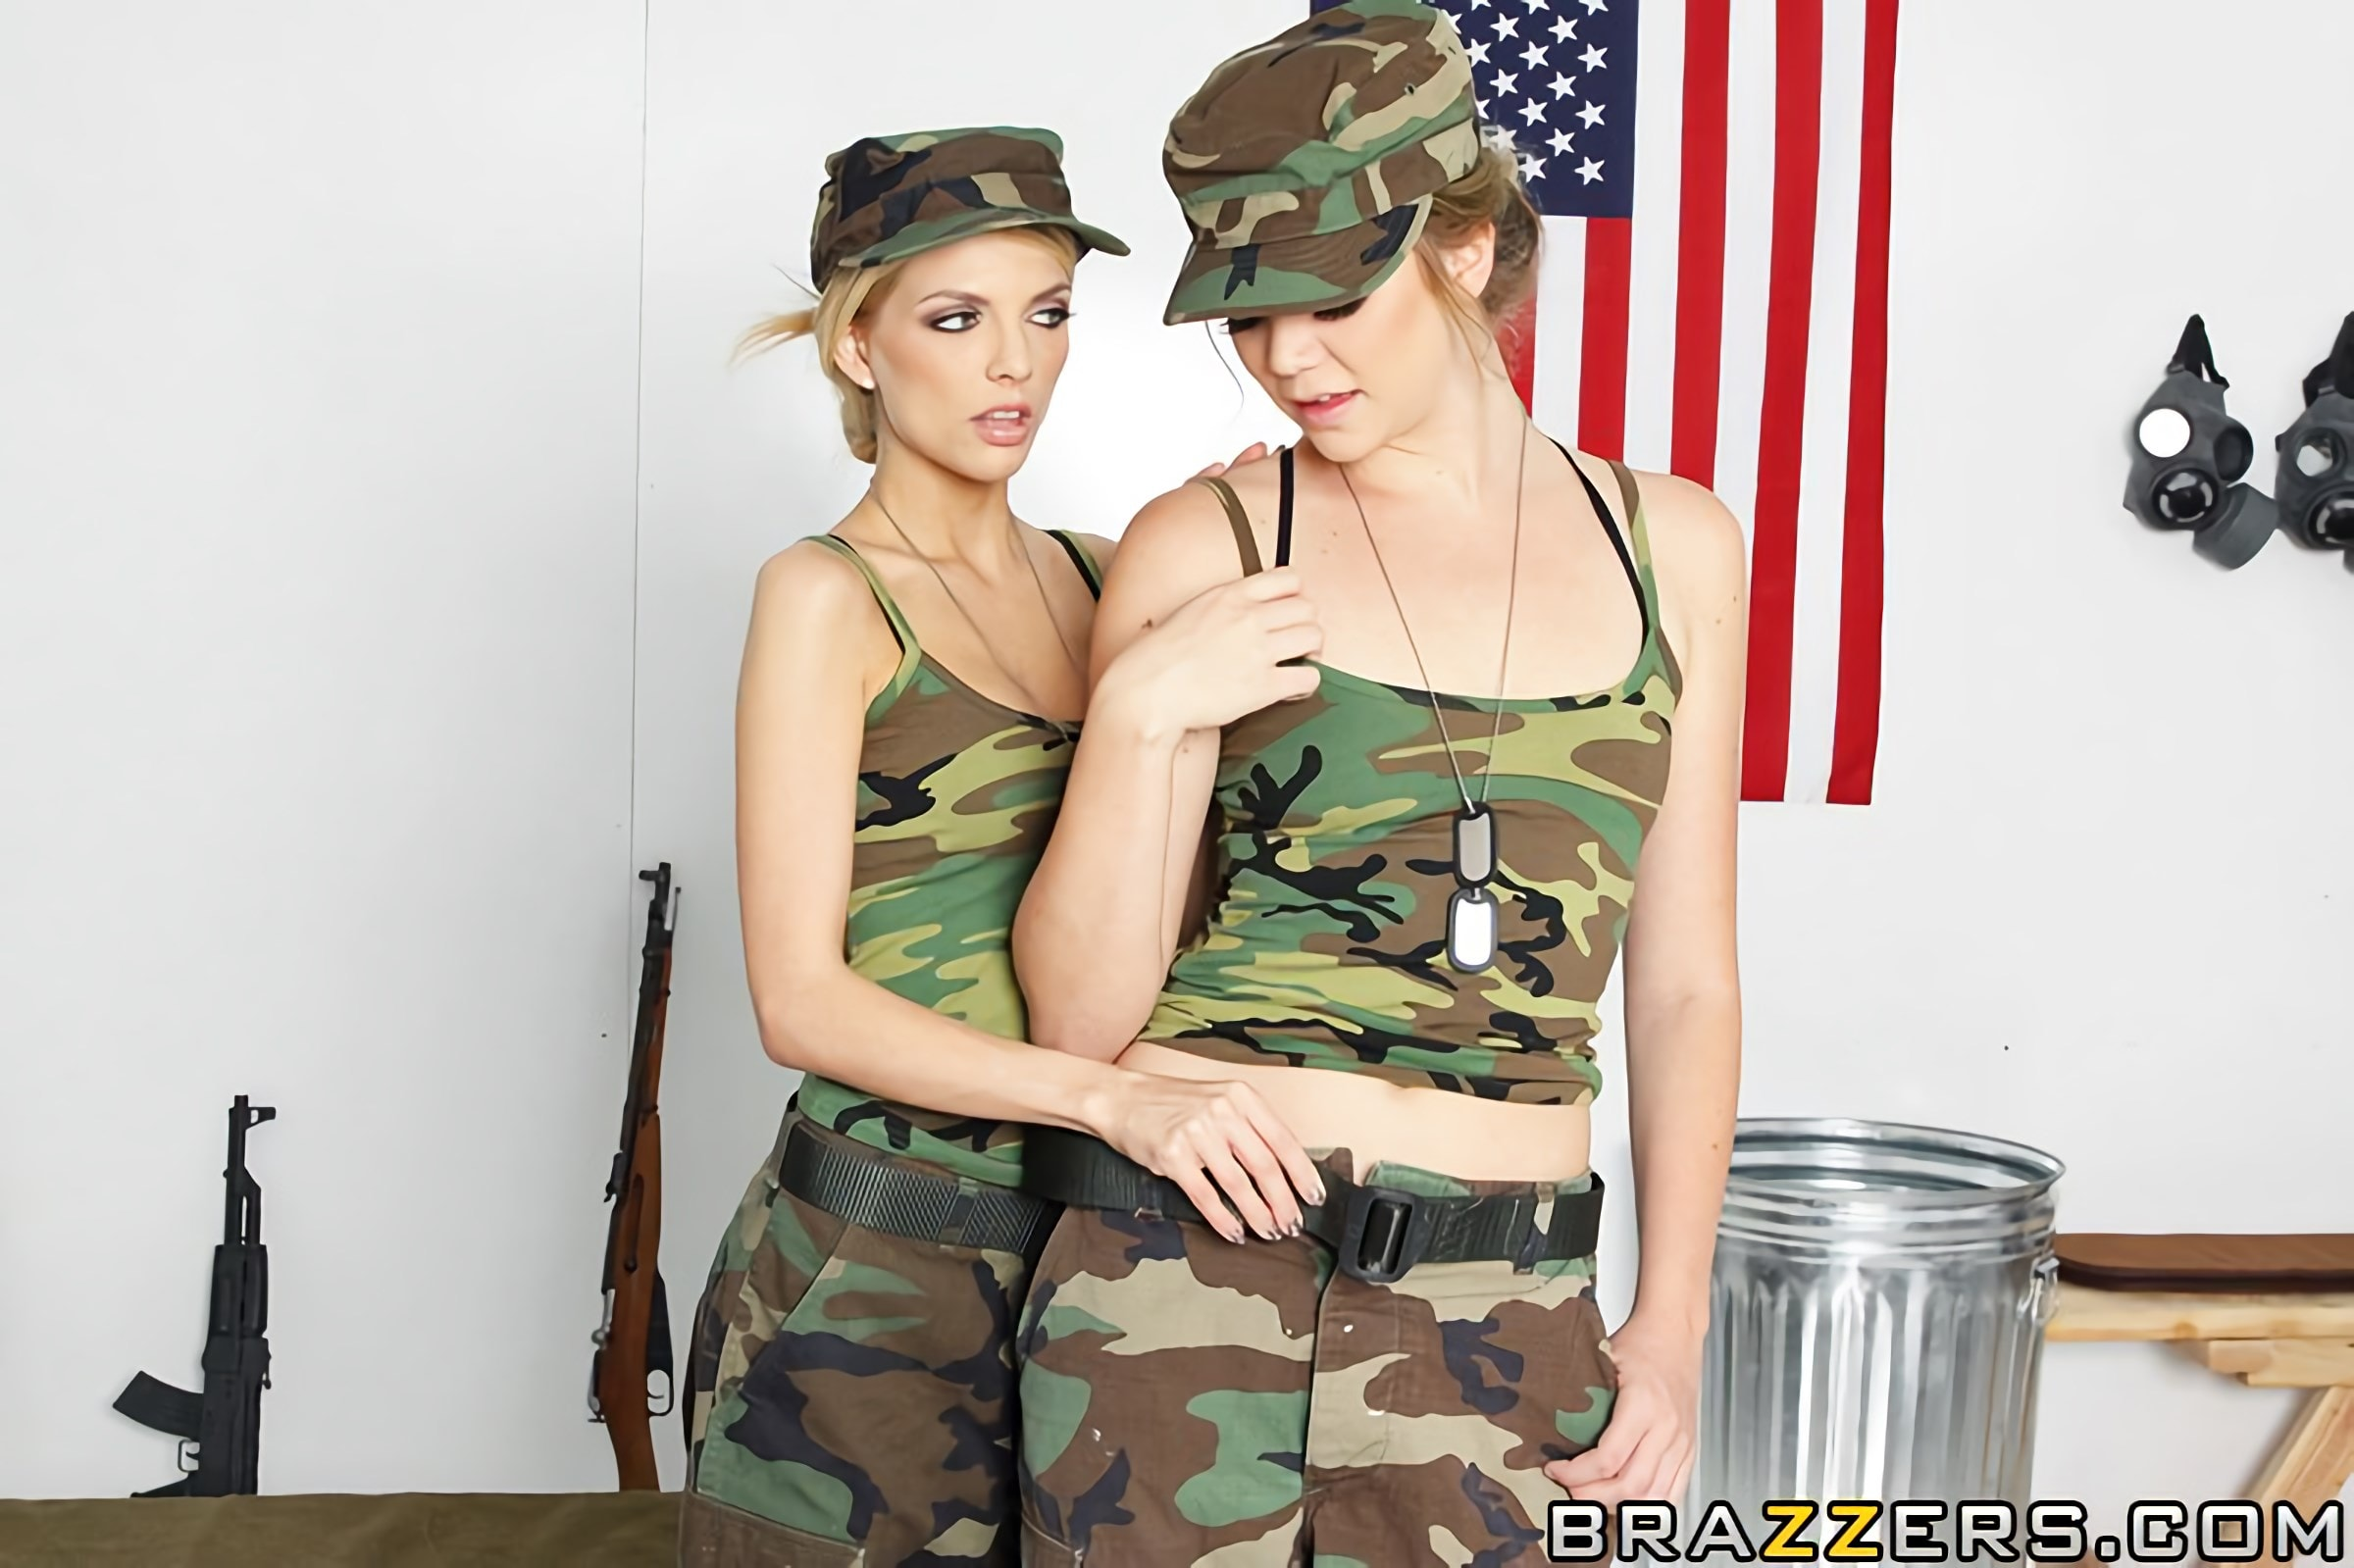 Gays And Lesbians In The Military